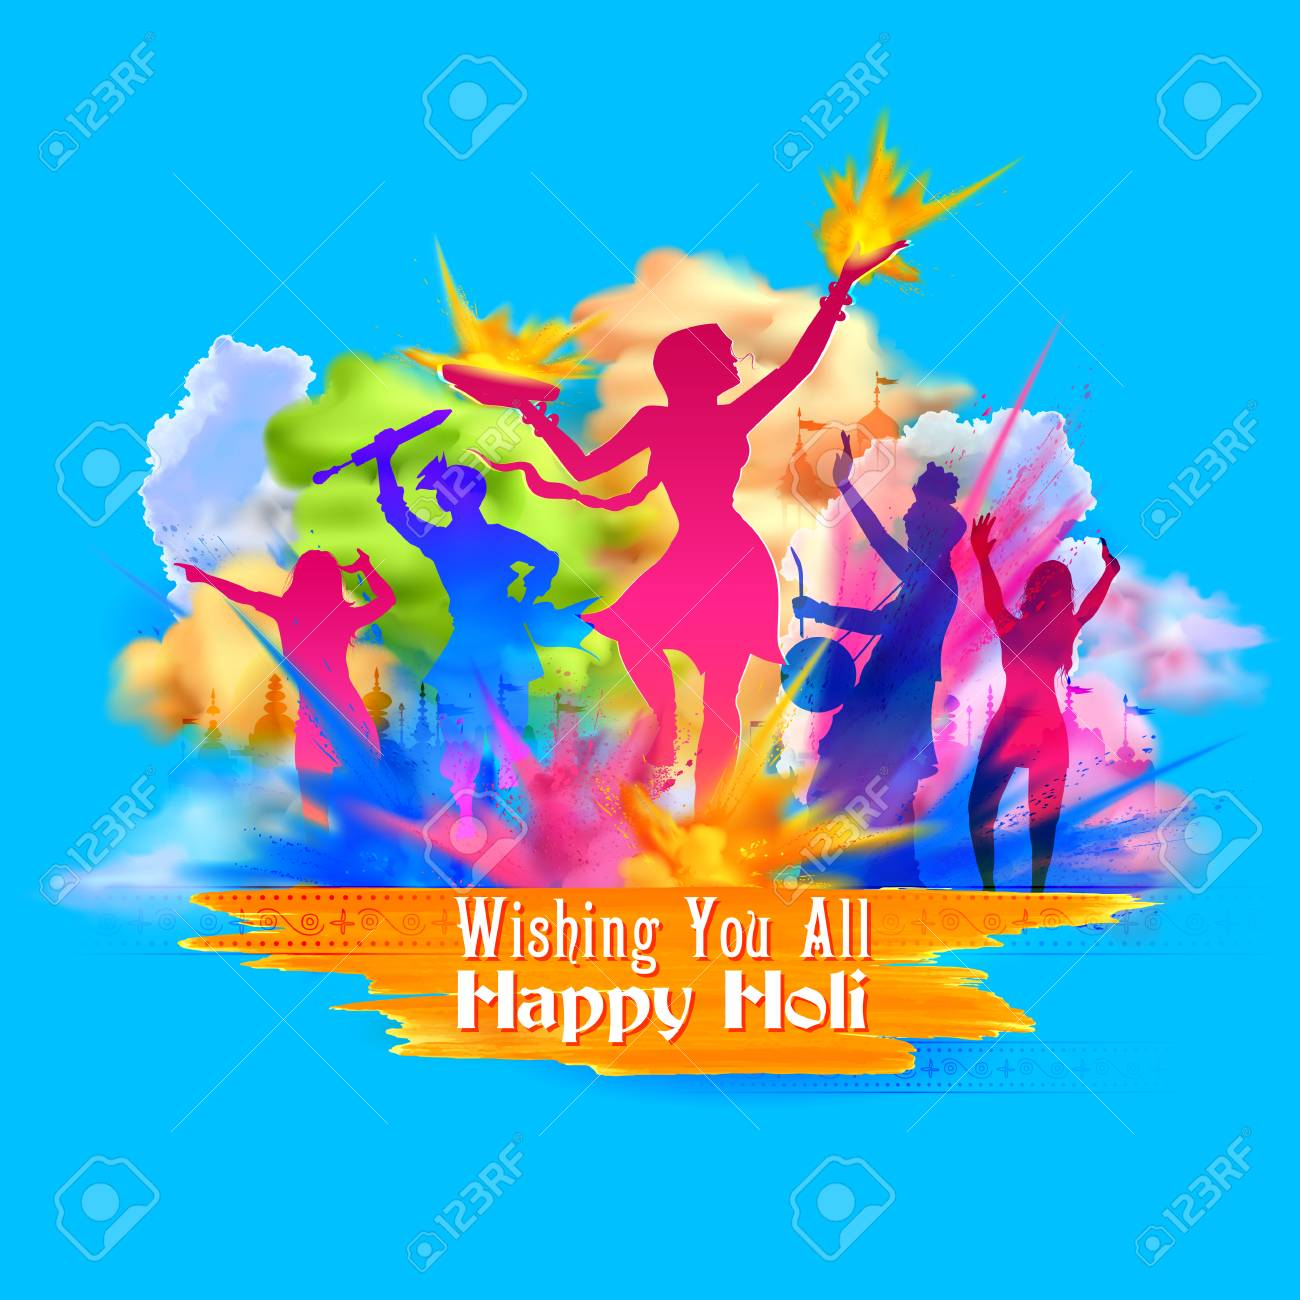 Happy holi background for festival of colors celebration greetings happy holi background for festival of colors celebration greetings stock vector 95883767 kristyandbryce Image collections